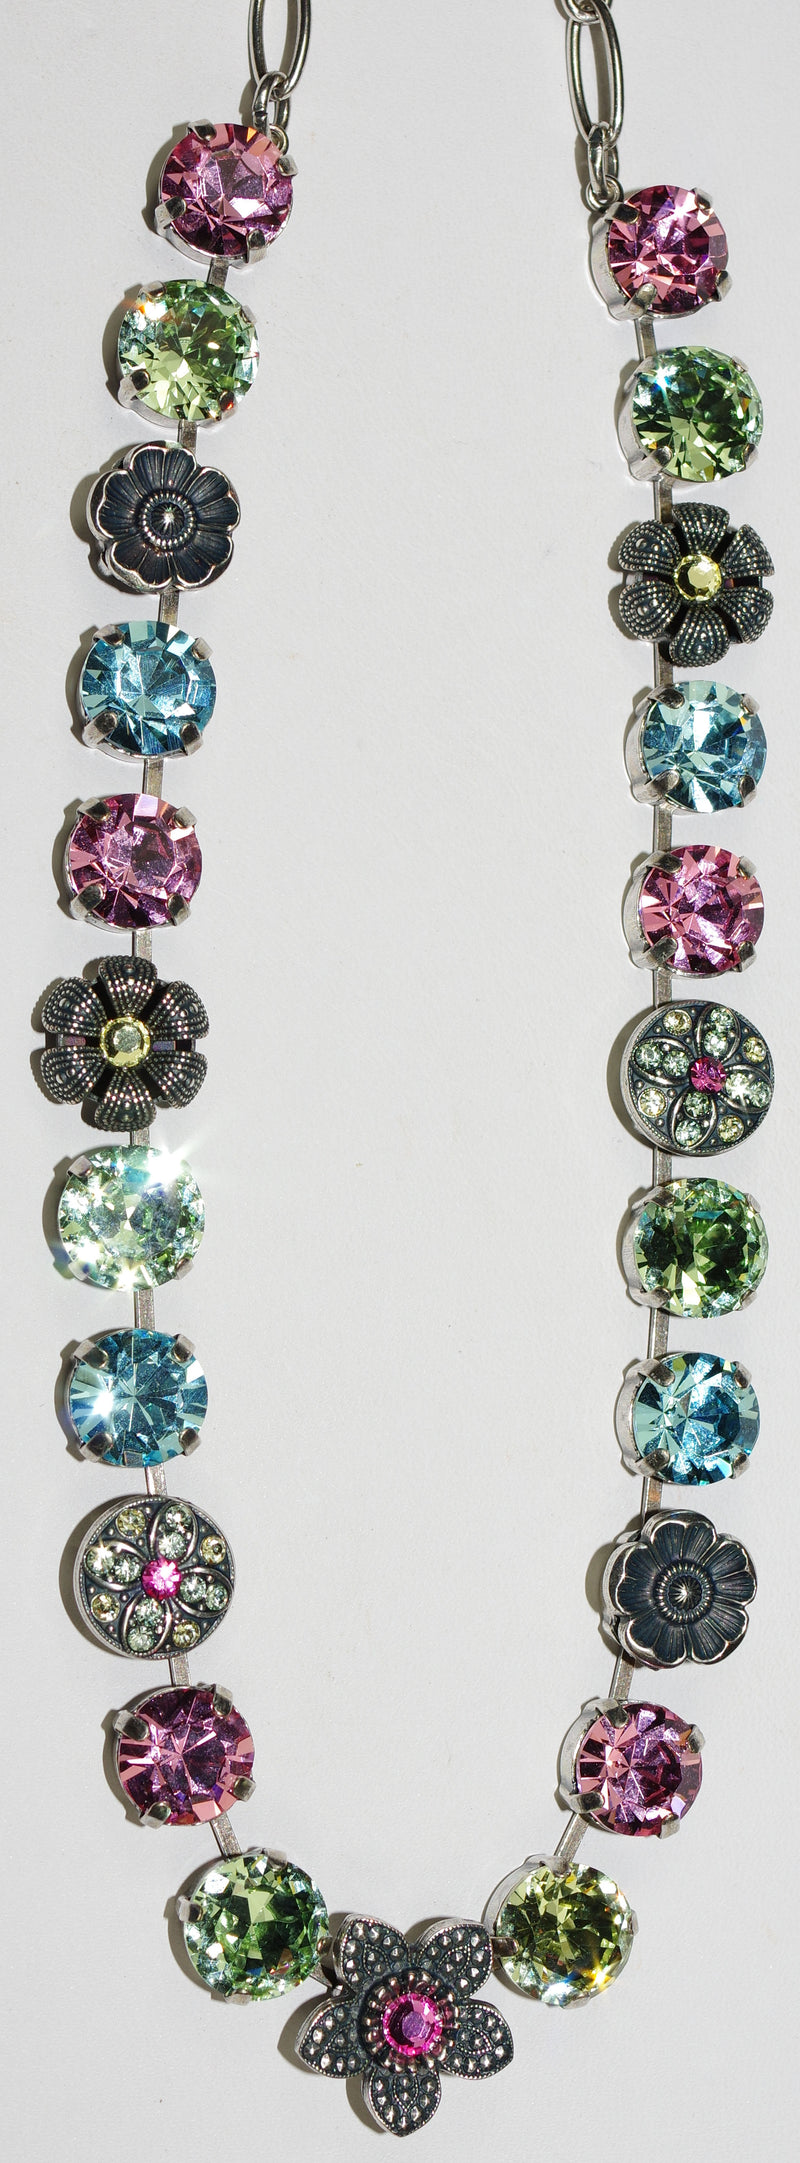 "MARIANA NECKLACE SPRING FLOWERS: pink, yellow, blue, green 1/2"" stones in silver setting, 18"" adjustable chain"